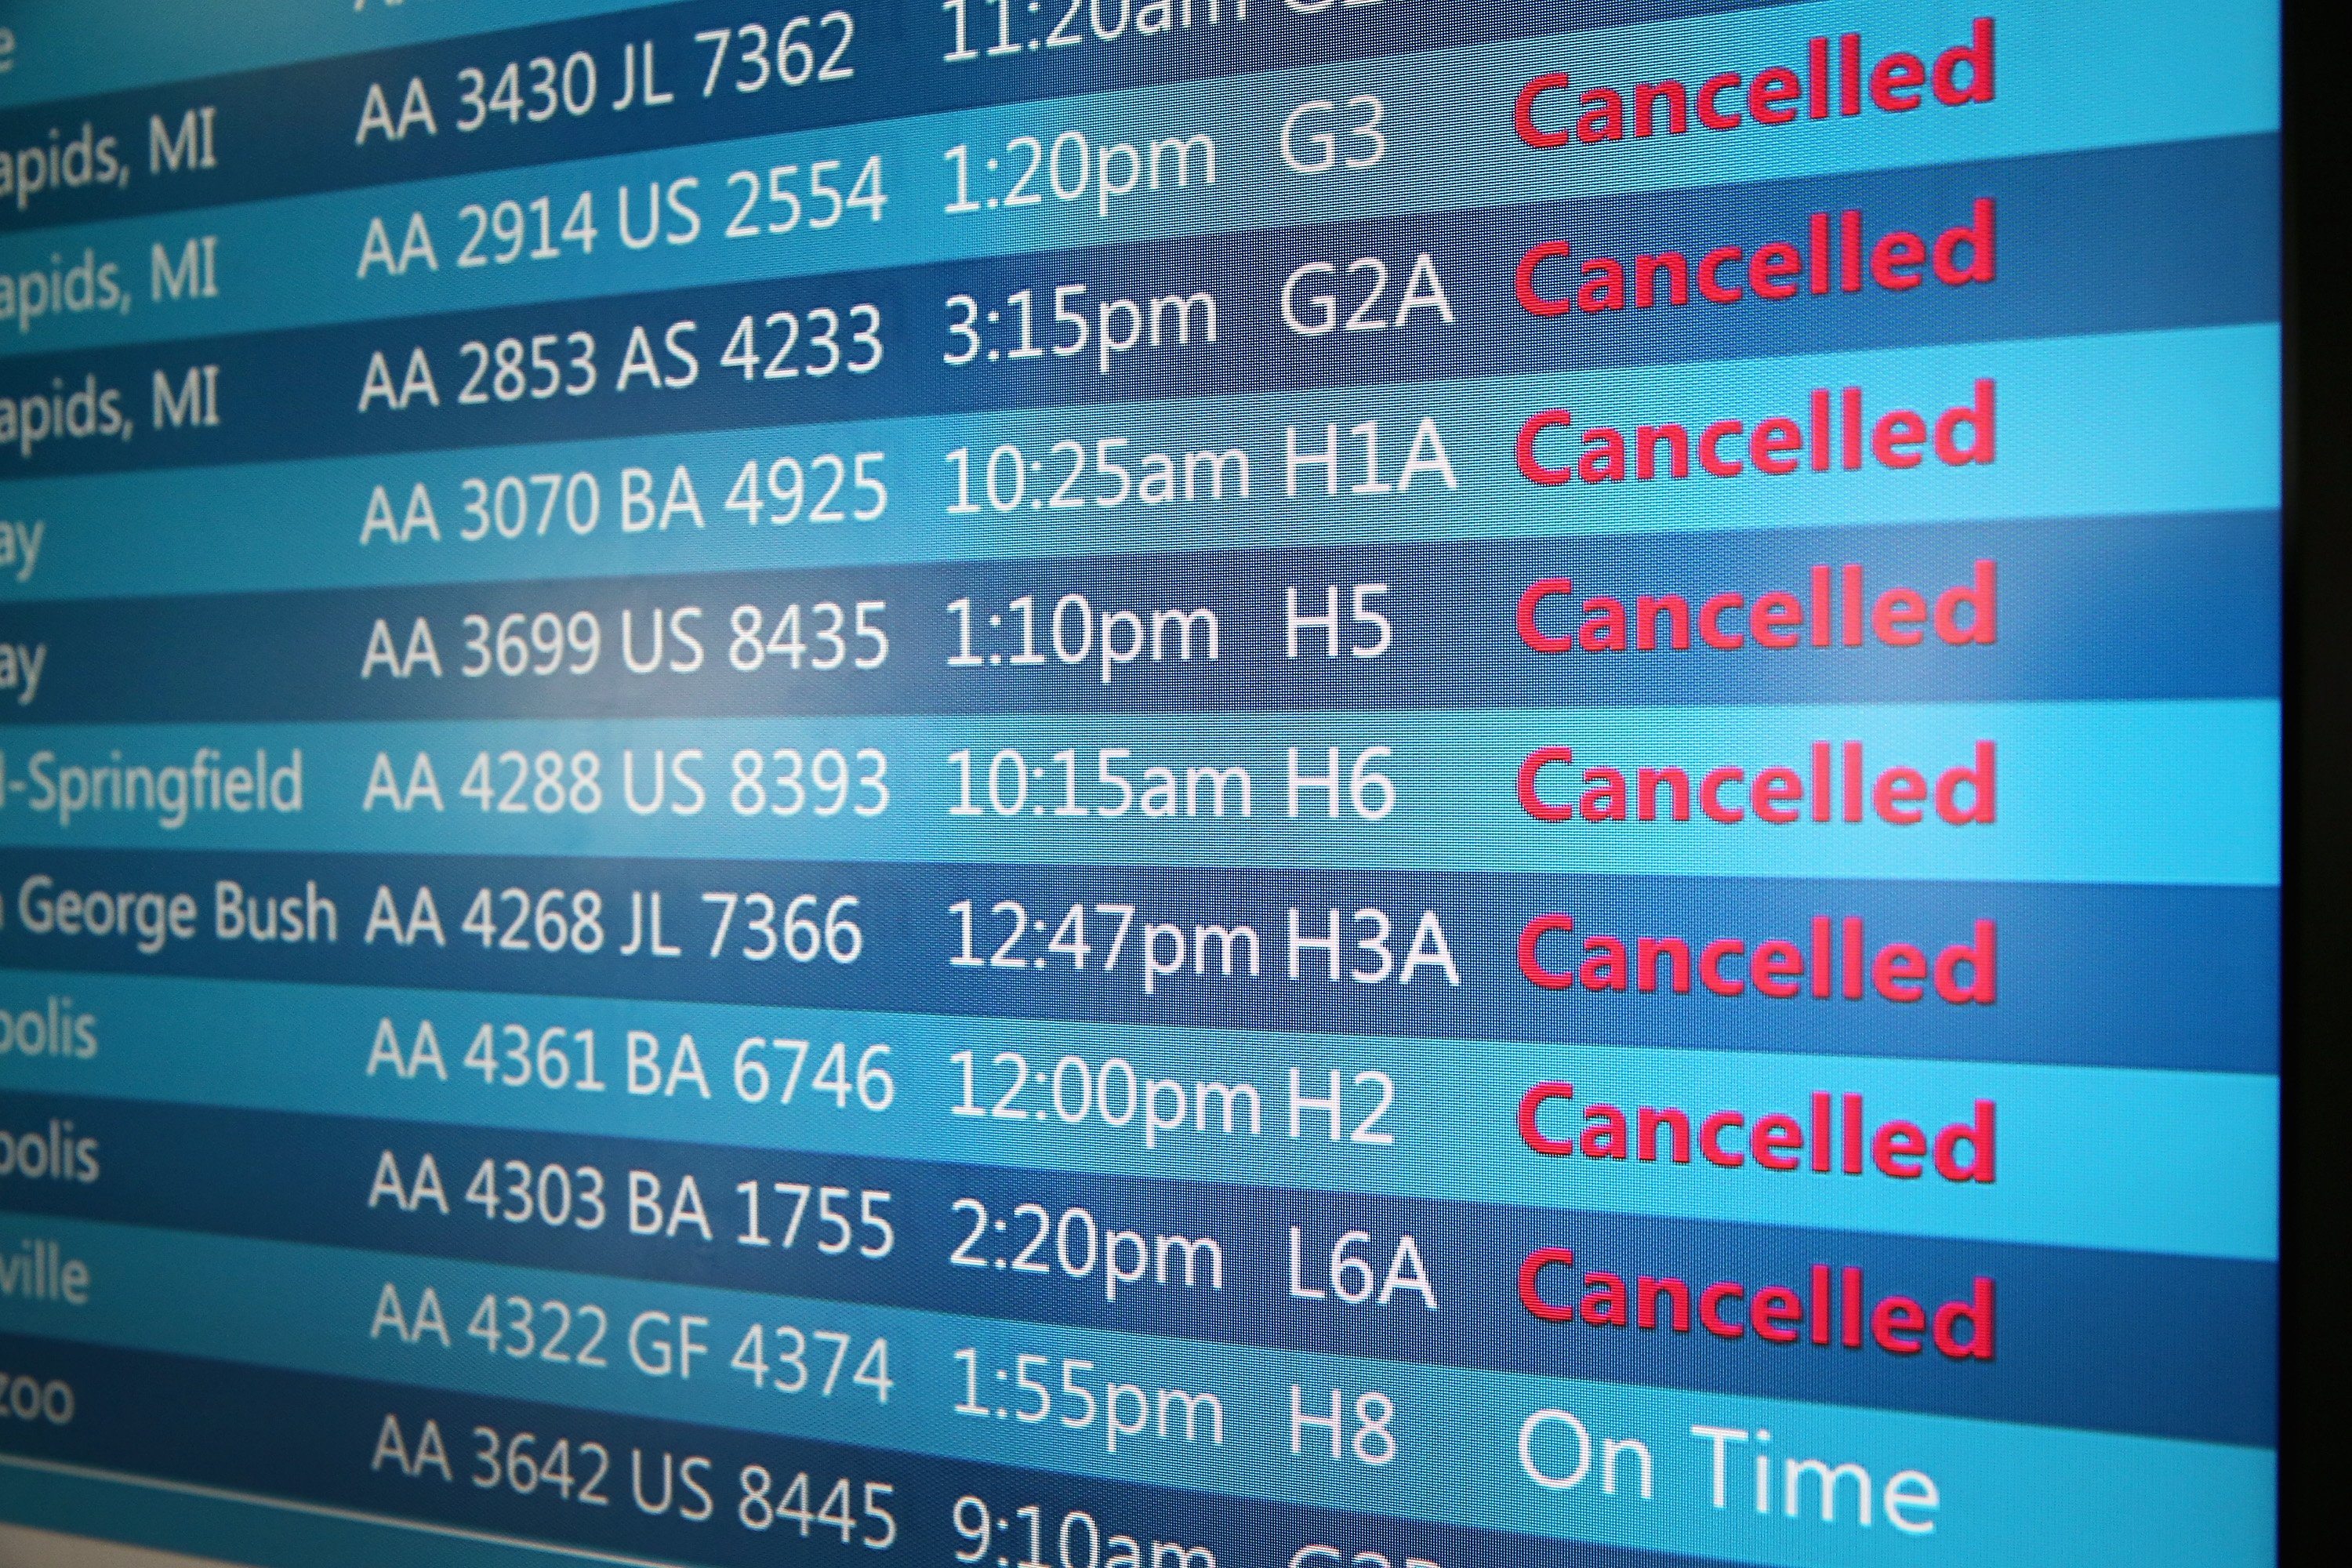 The arrival and departure display at O'Hare International Airport shows a list of cancelled flights on Sept. 27, 2014 in Chicago.